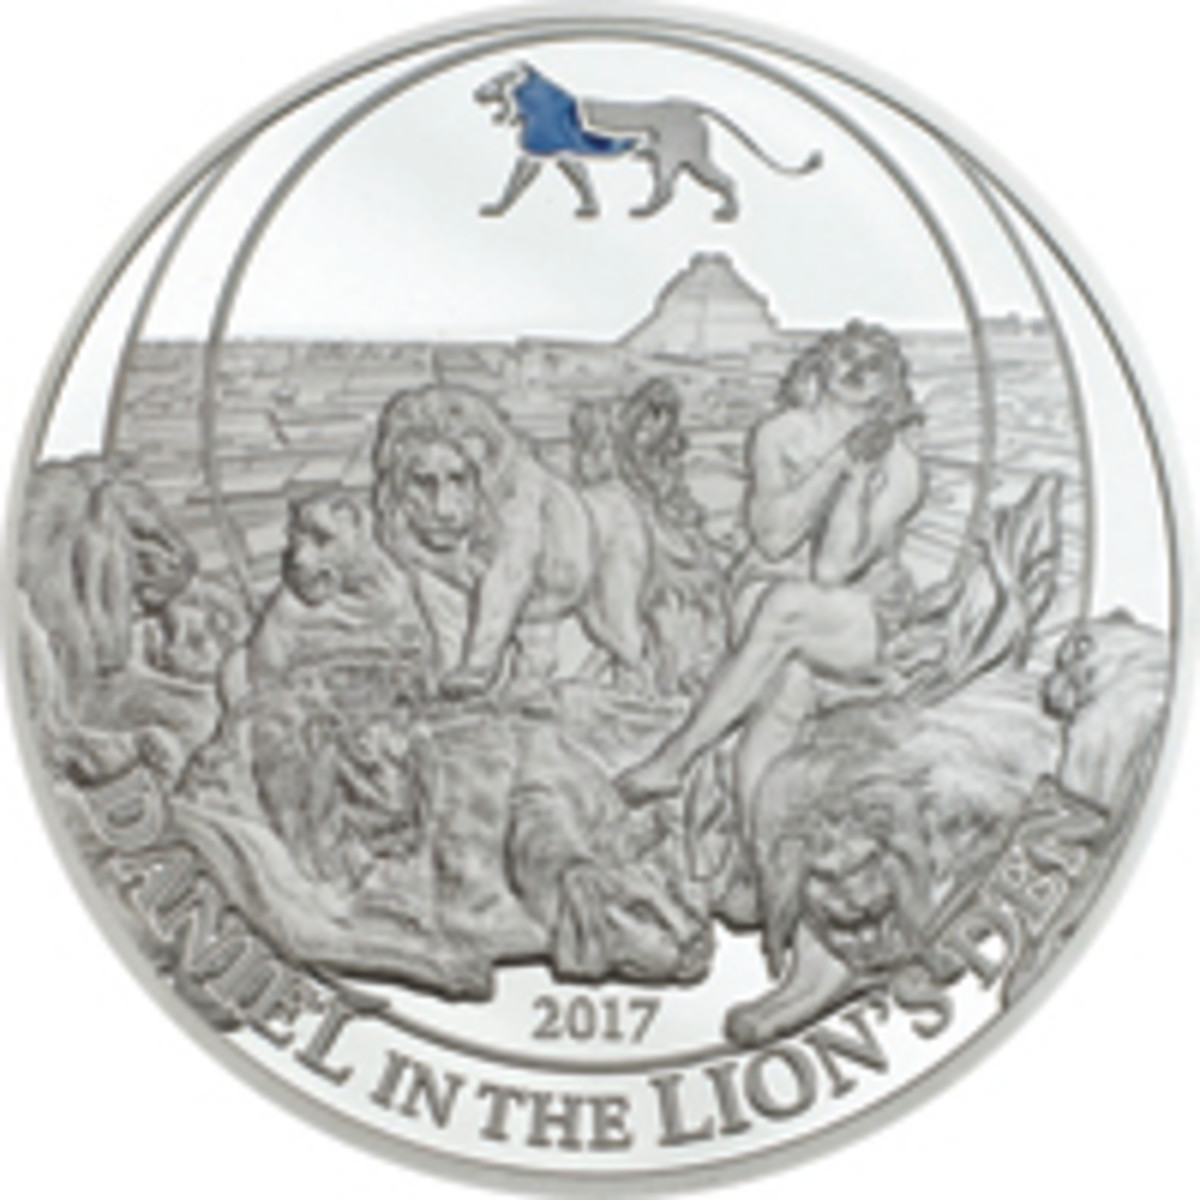 Reverse of Palau's Daniel in the Lions' Den silver $2 proof showing the Jewish hero as a young man. (Image courtesy Numiscollect)